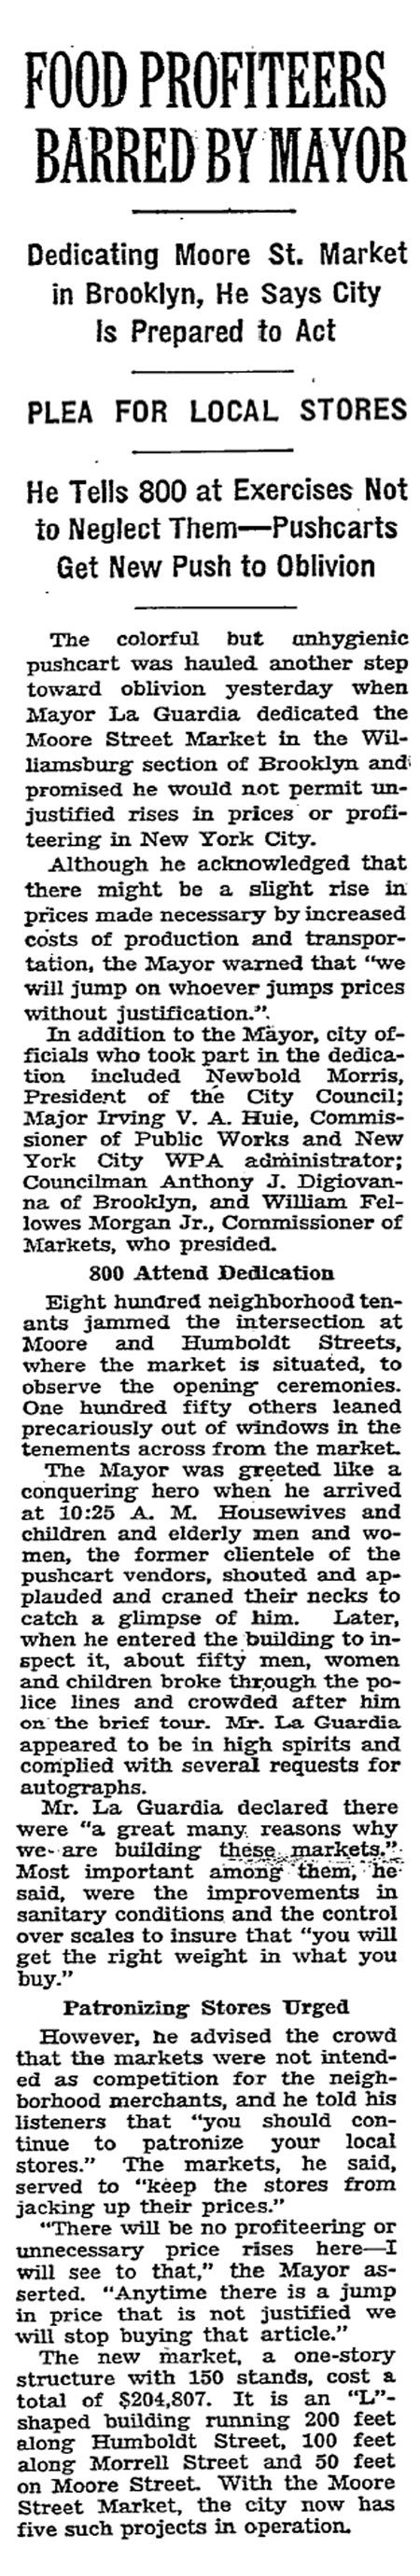 7/29/1941 NYTimes